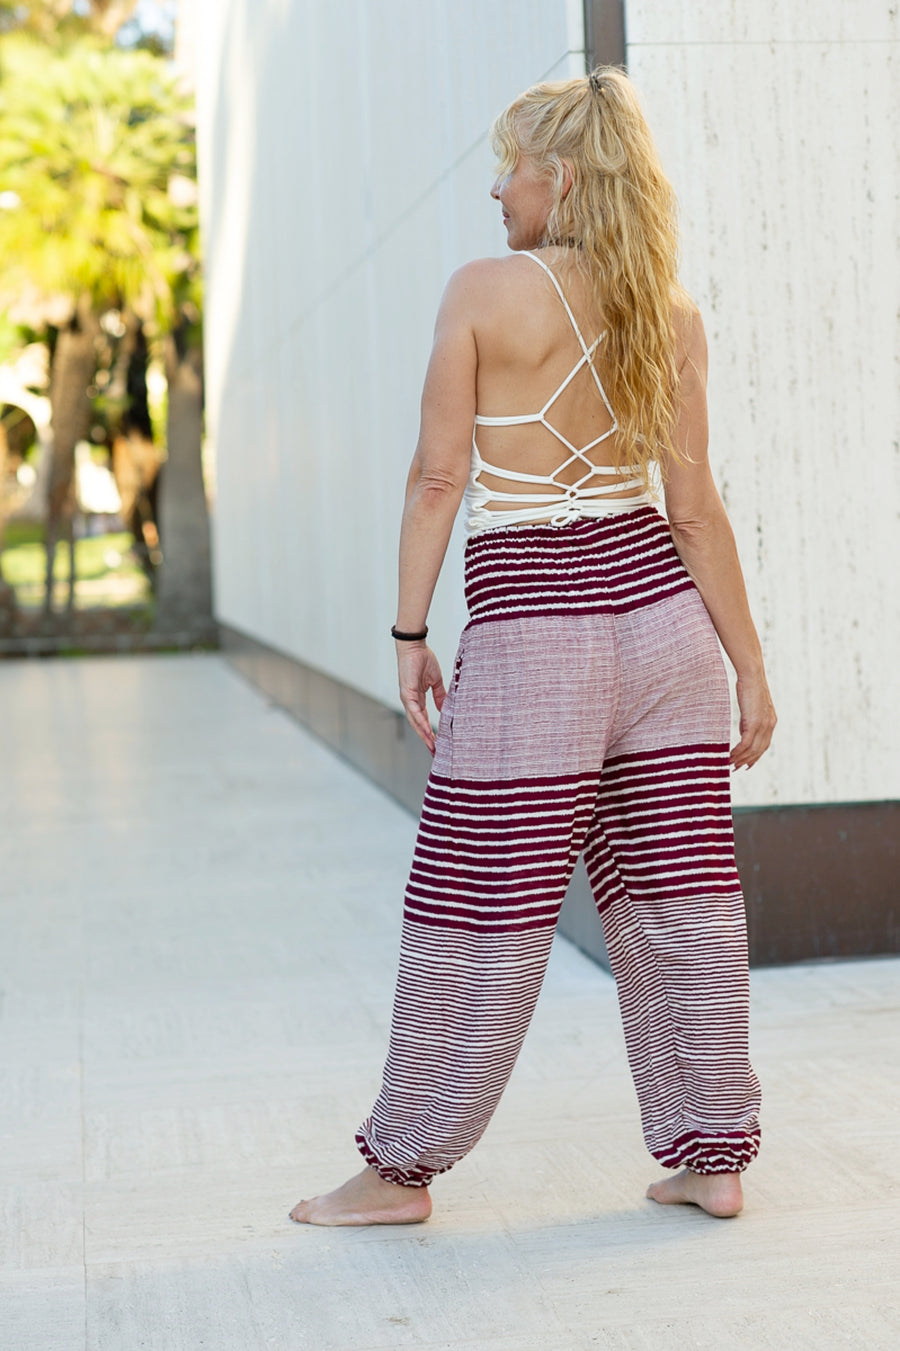 Striped Straight Leg Harem Pants In Red-The High Thai-The High Thai-Yoga Pants-Harem Pants-Hippie Clothing-San Diego